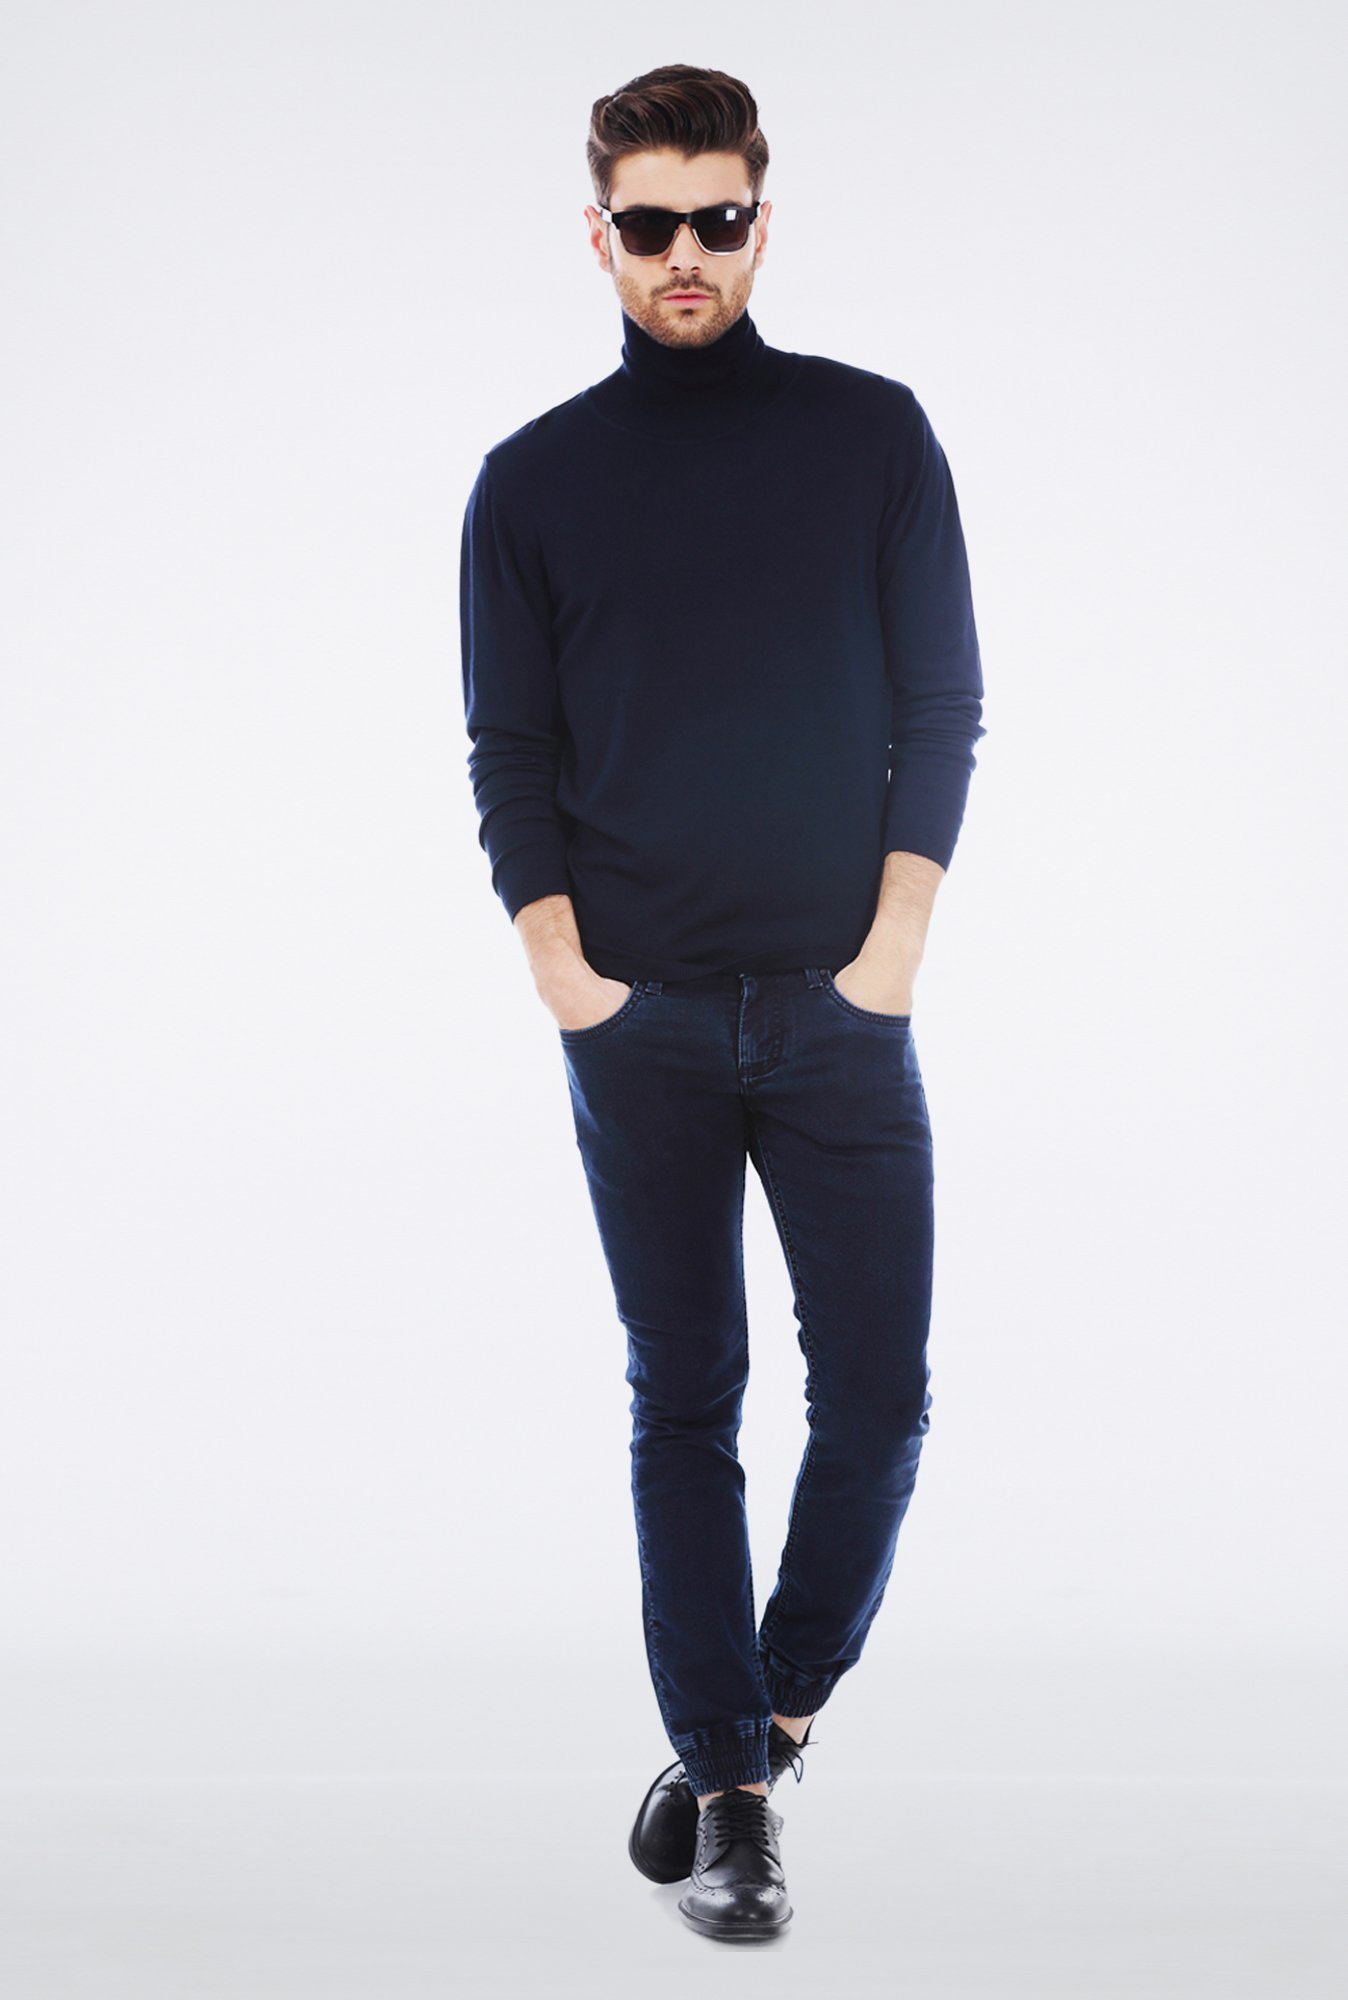 Basics Navy Turtle neck T Shirt